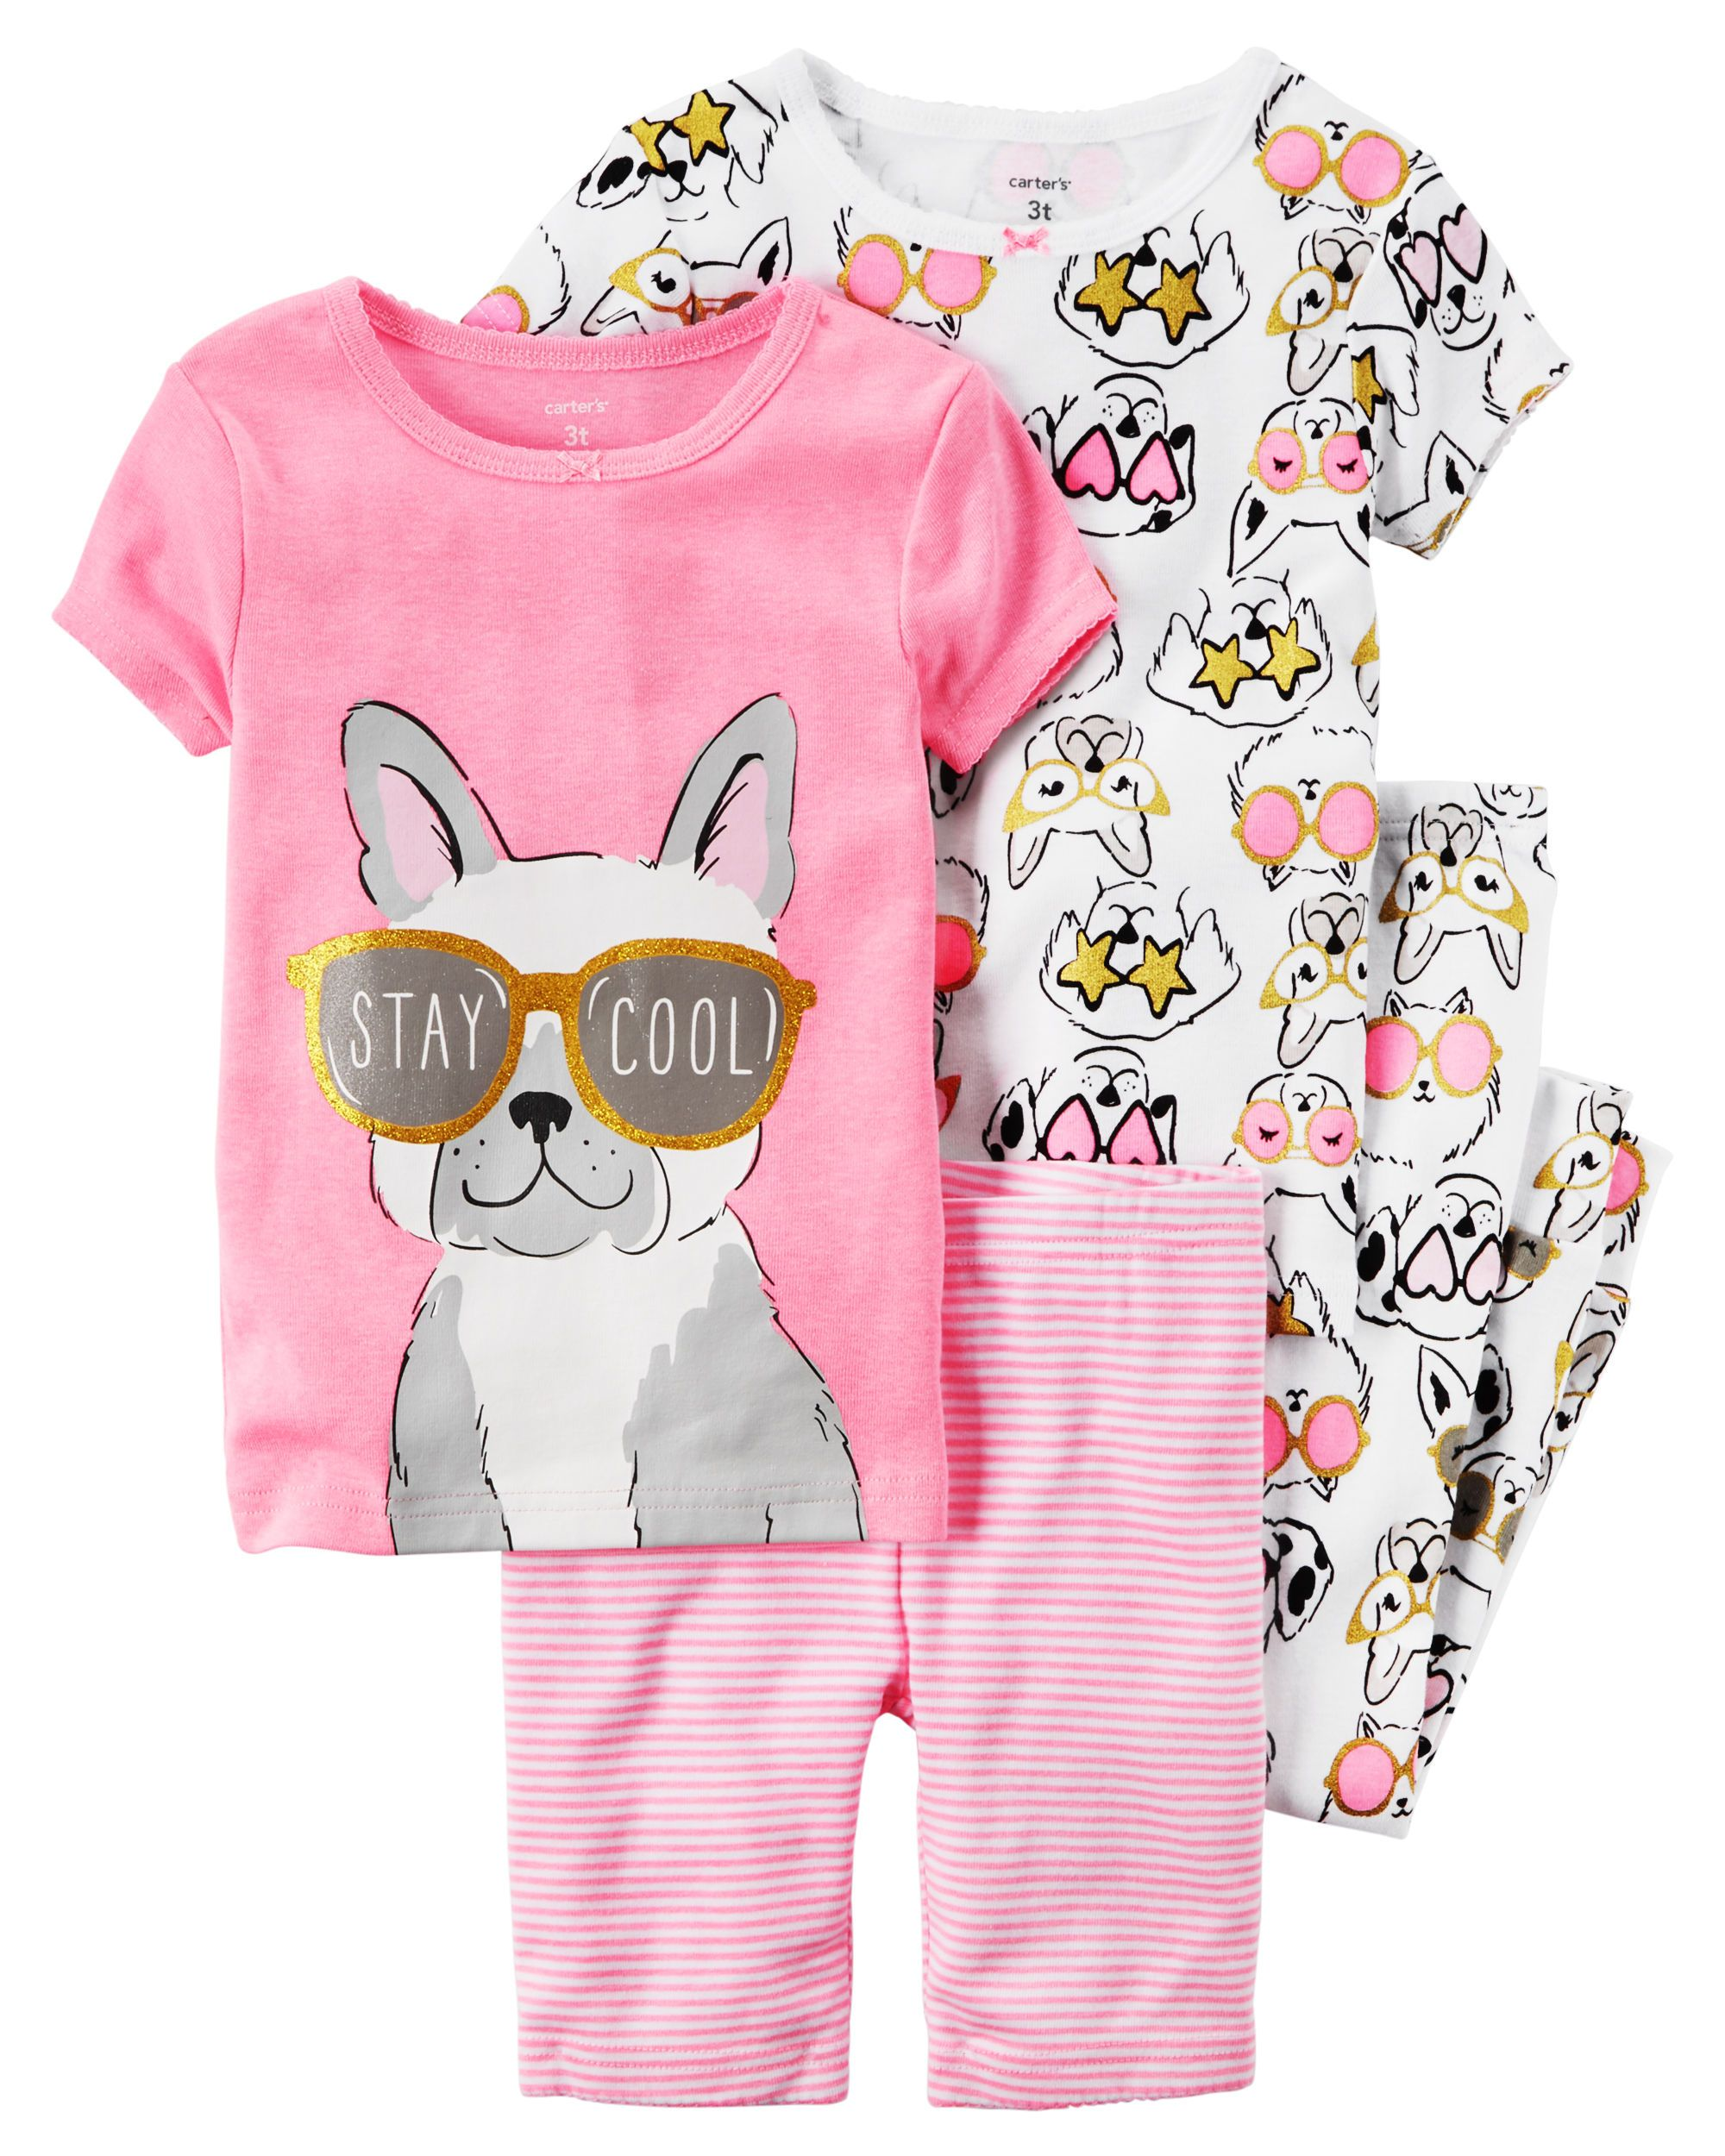 e9431fac6fff Baby Girl 4-Piece Neon PJs In coordinating prints